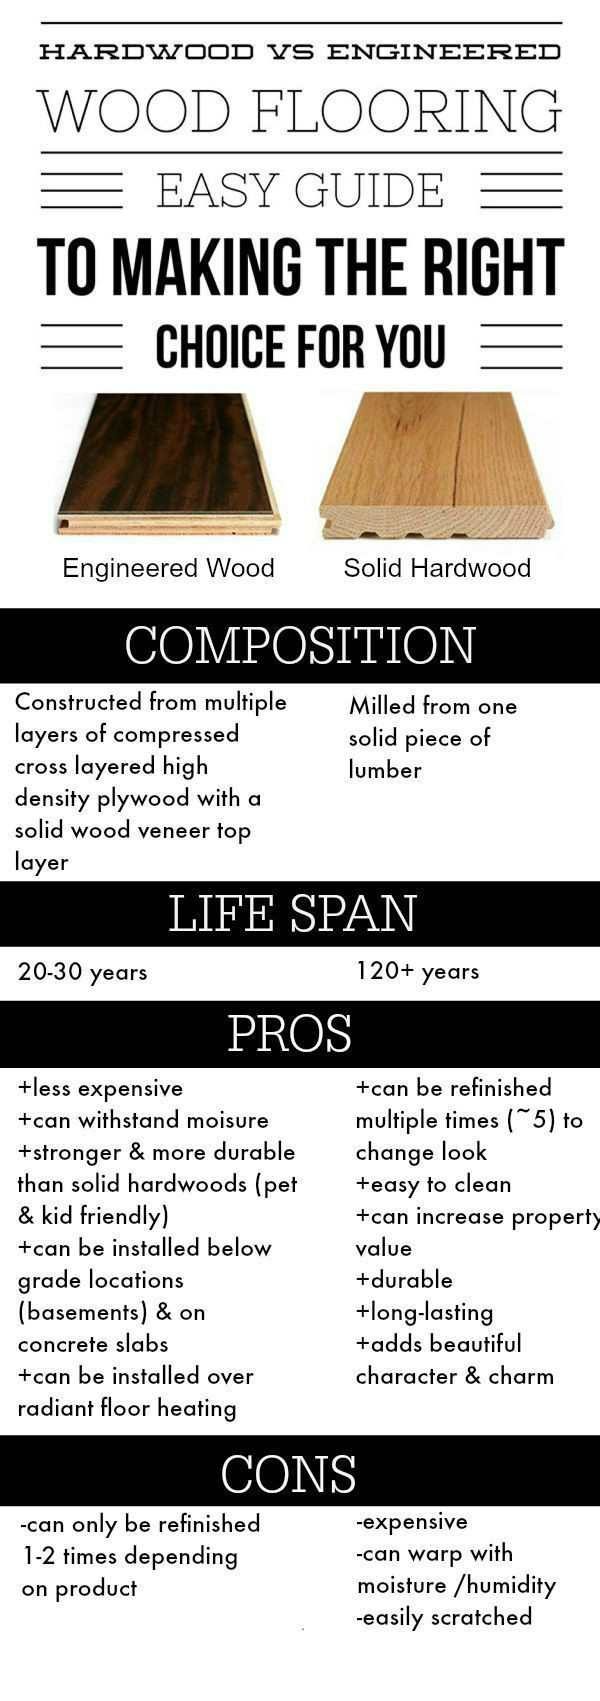 hardwood floor refinishing northern nj of 8 best flooring images on pinterest flooring ground covering and intended for engineered wood flooring infographic comparison easy guide to decide which is right for you